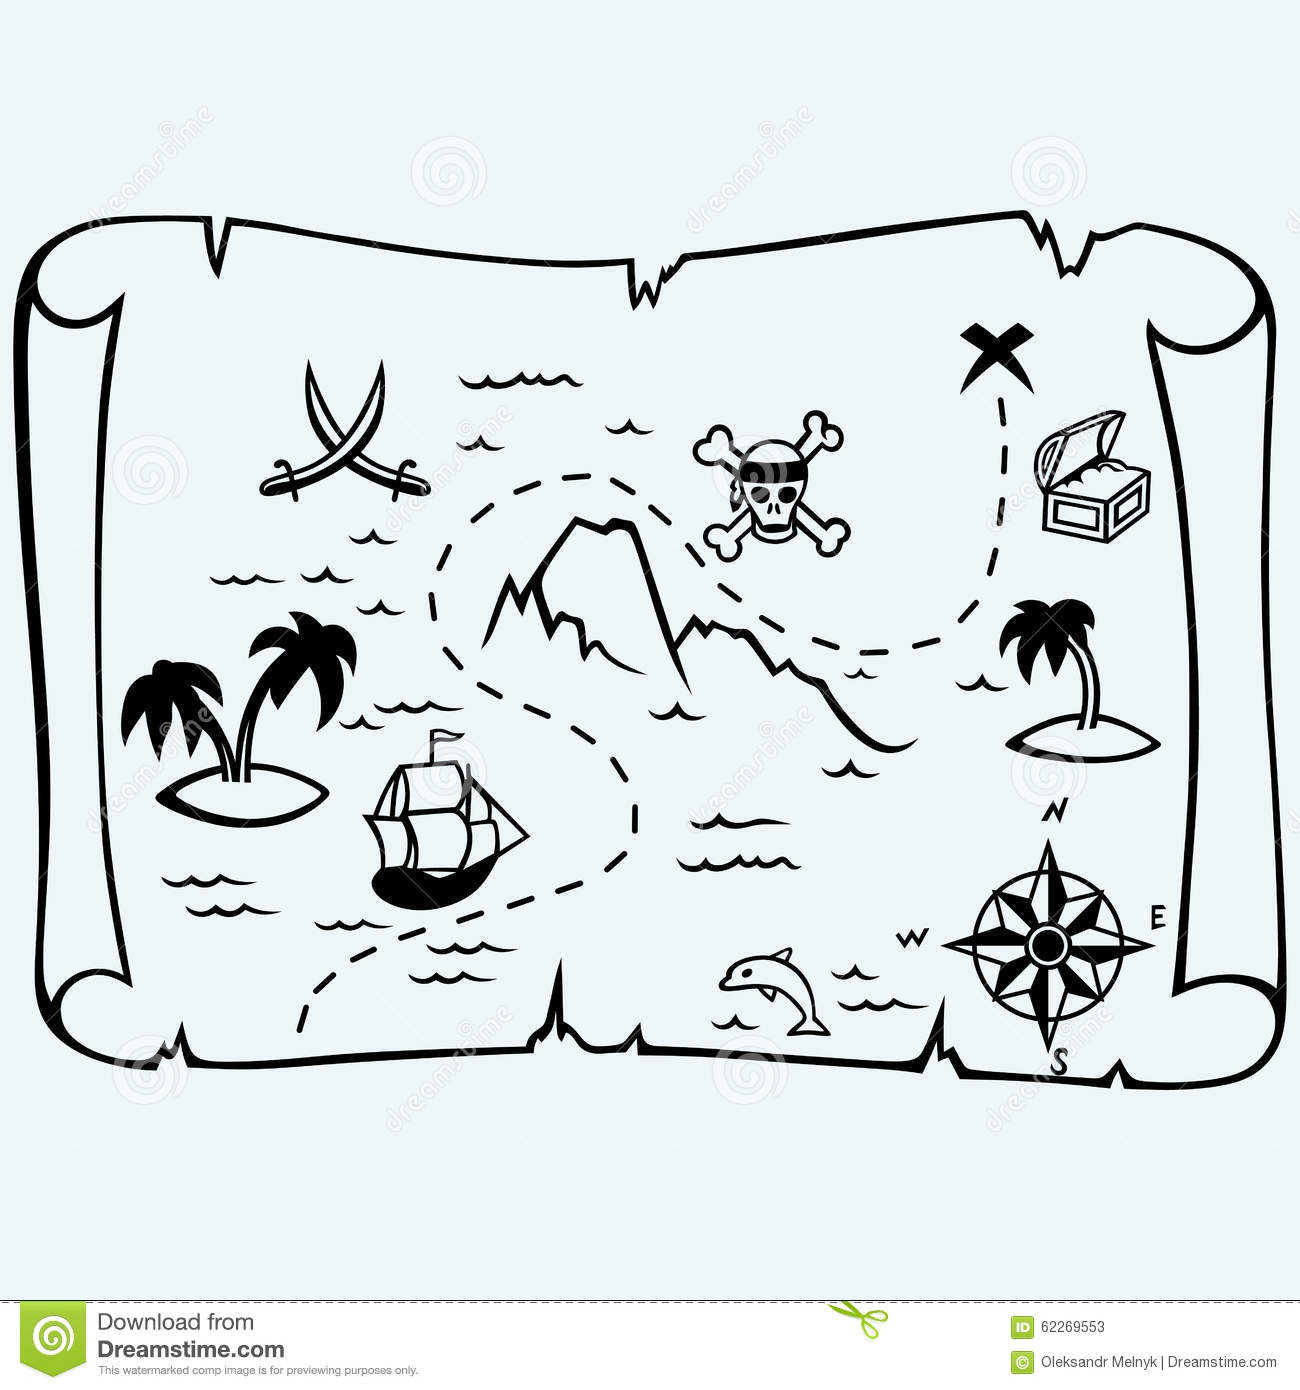 Gallery For gt Pirate Map Background Black And White